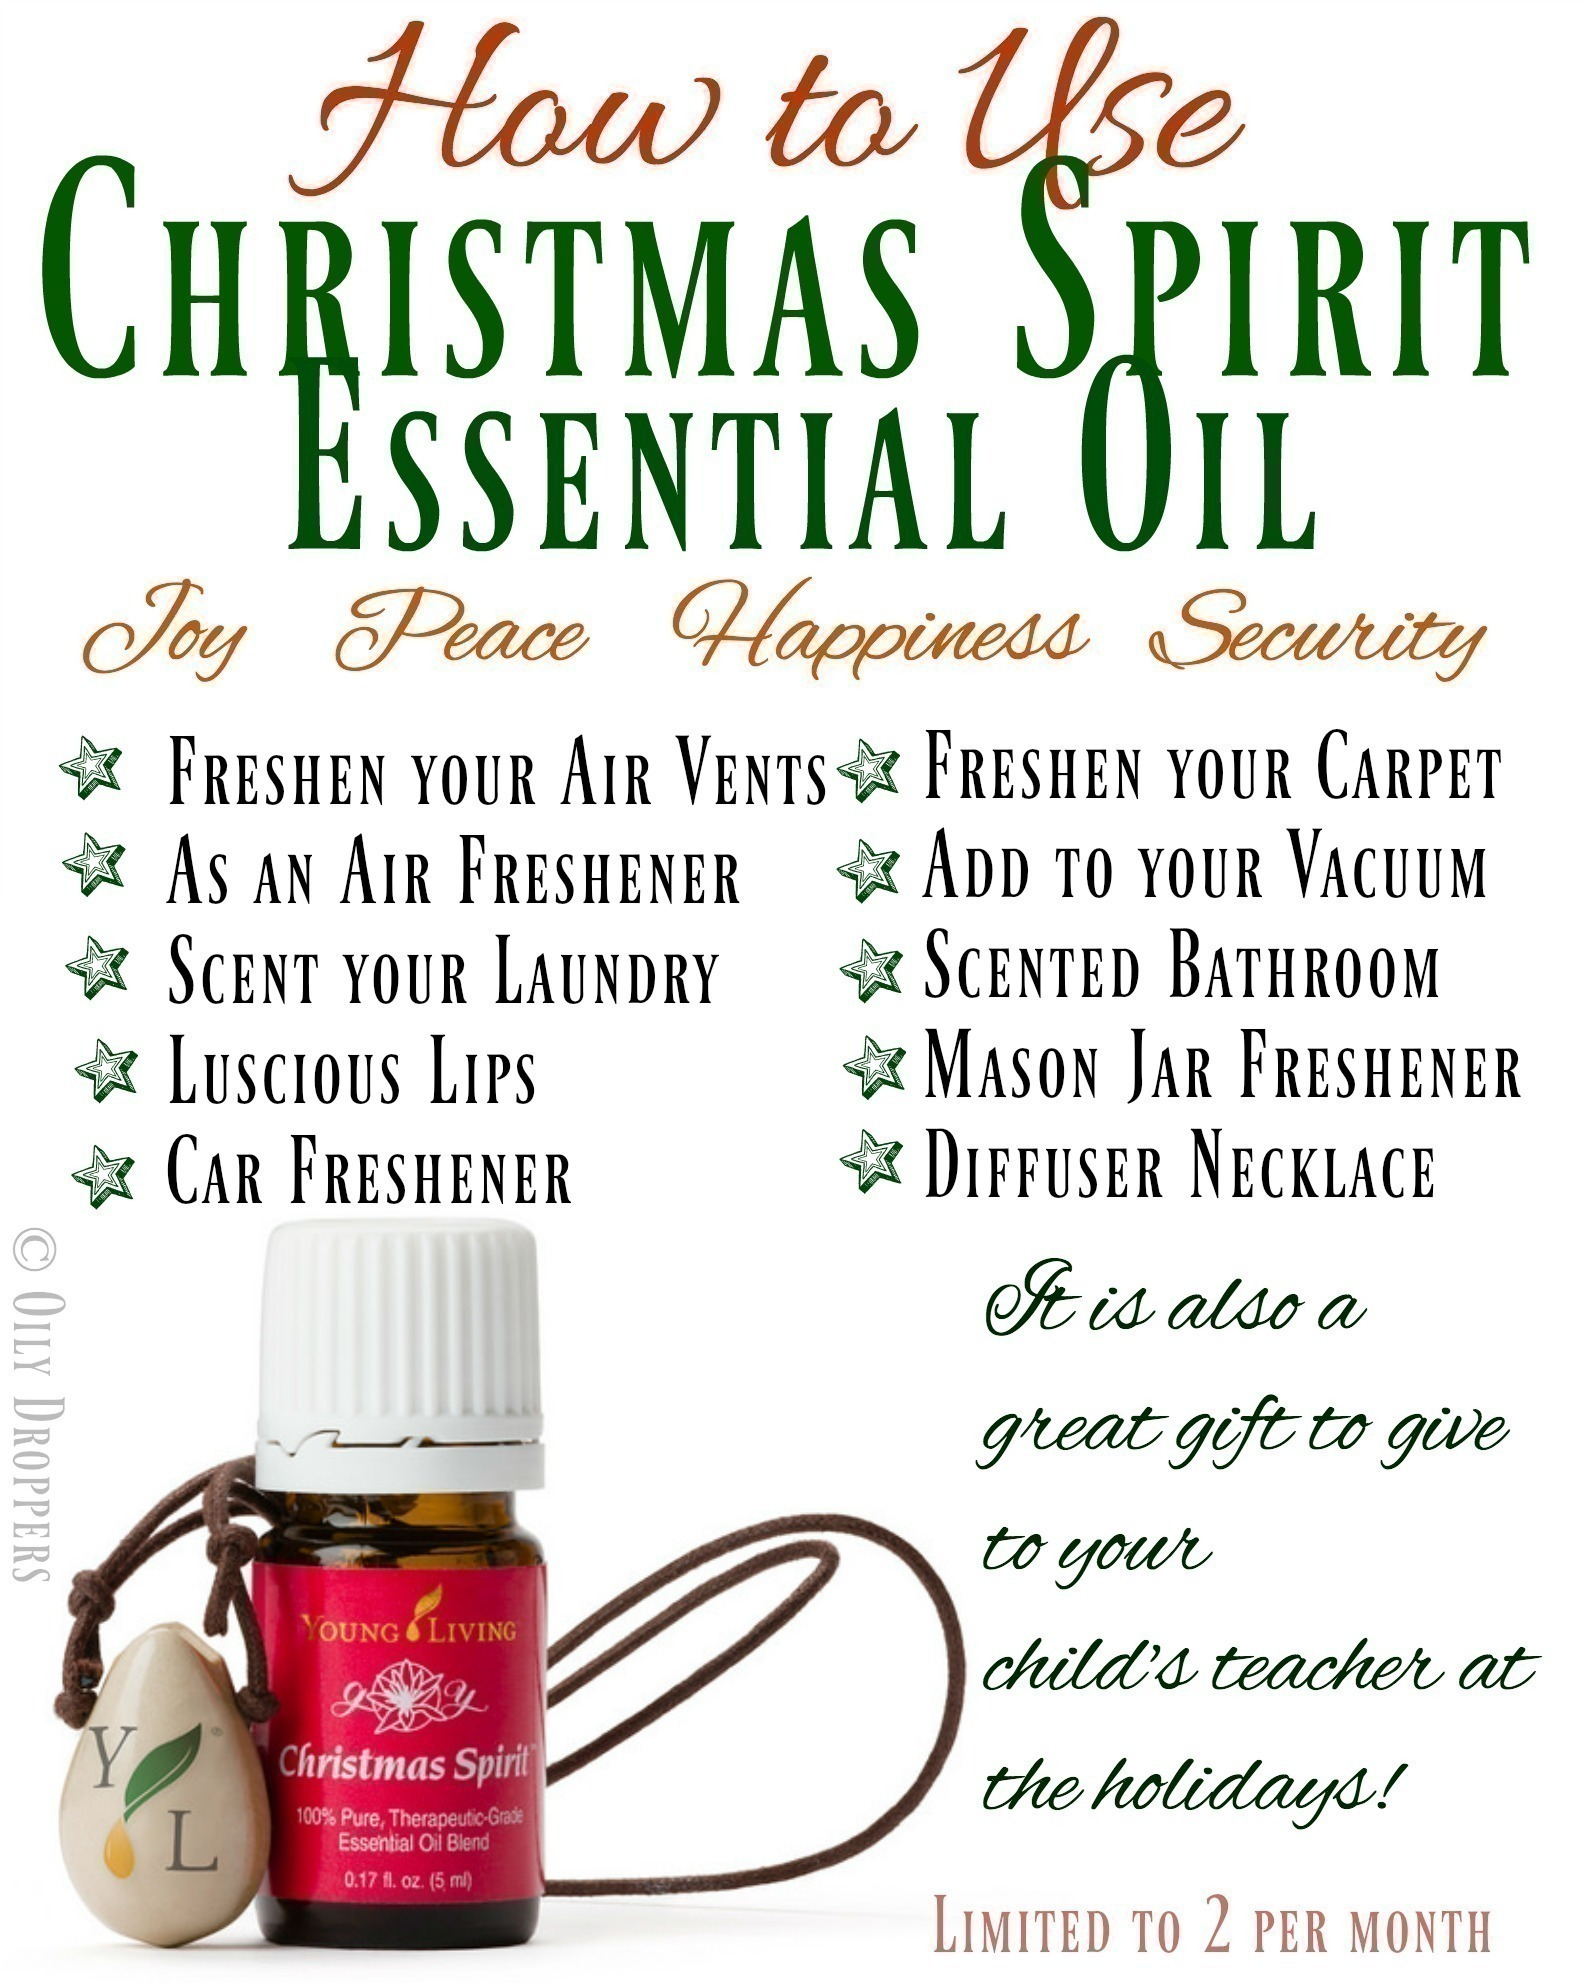 how to use christmas spirit essential oil - Young Living Christmas Spirit